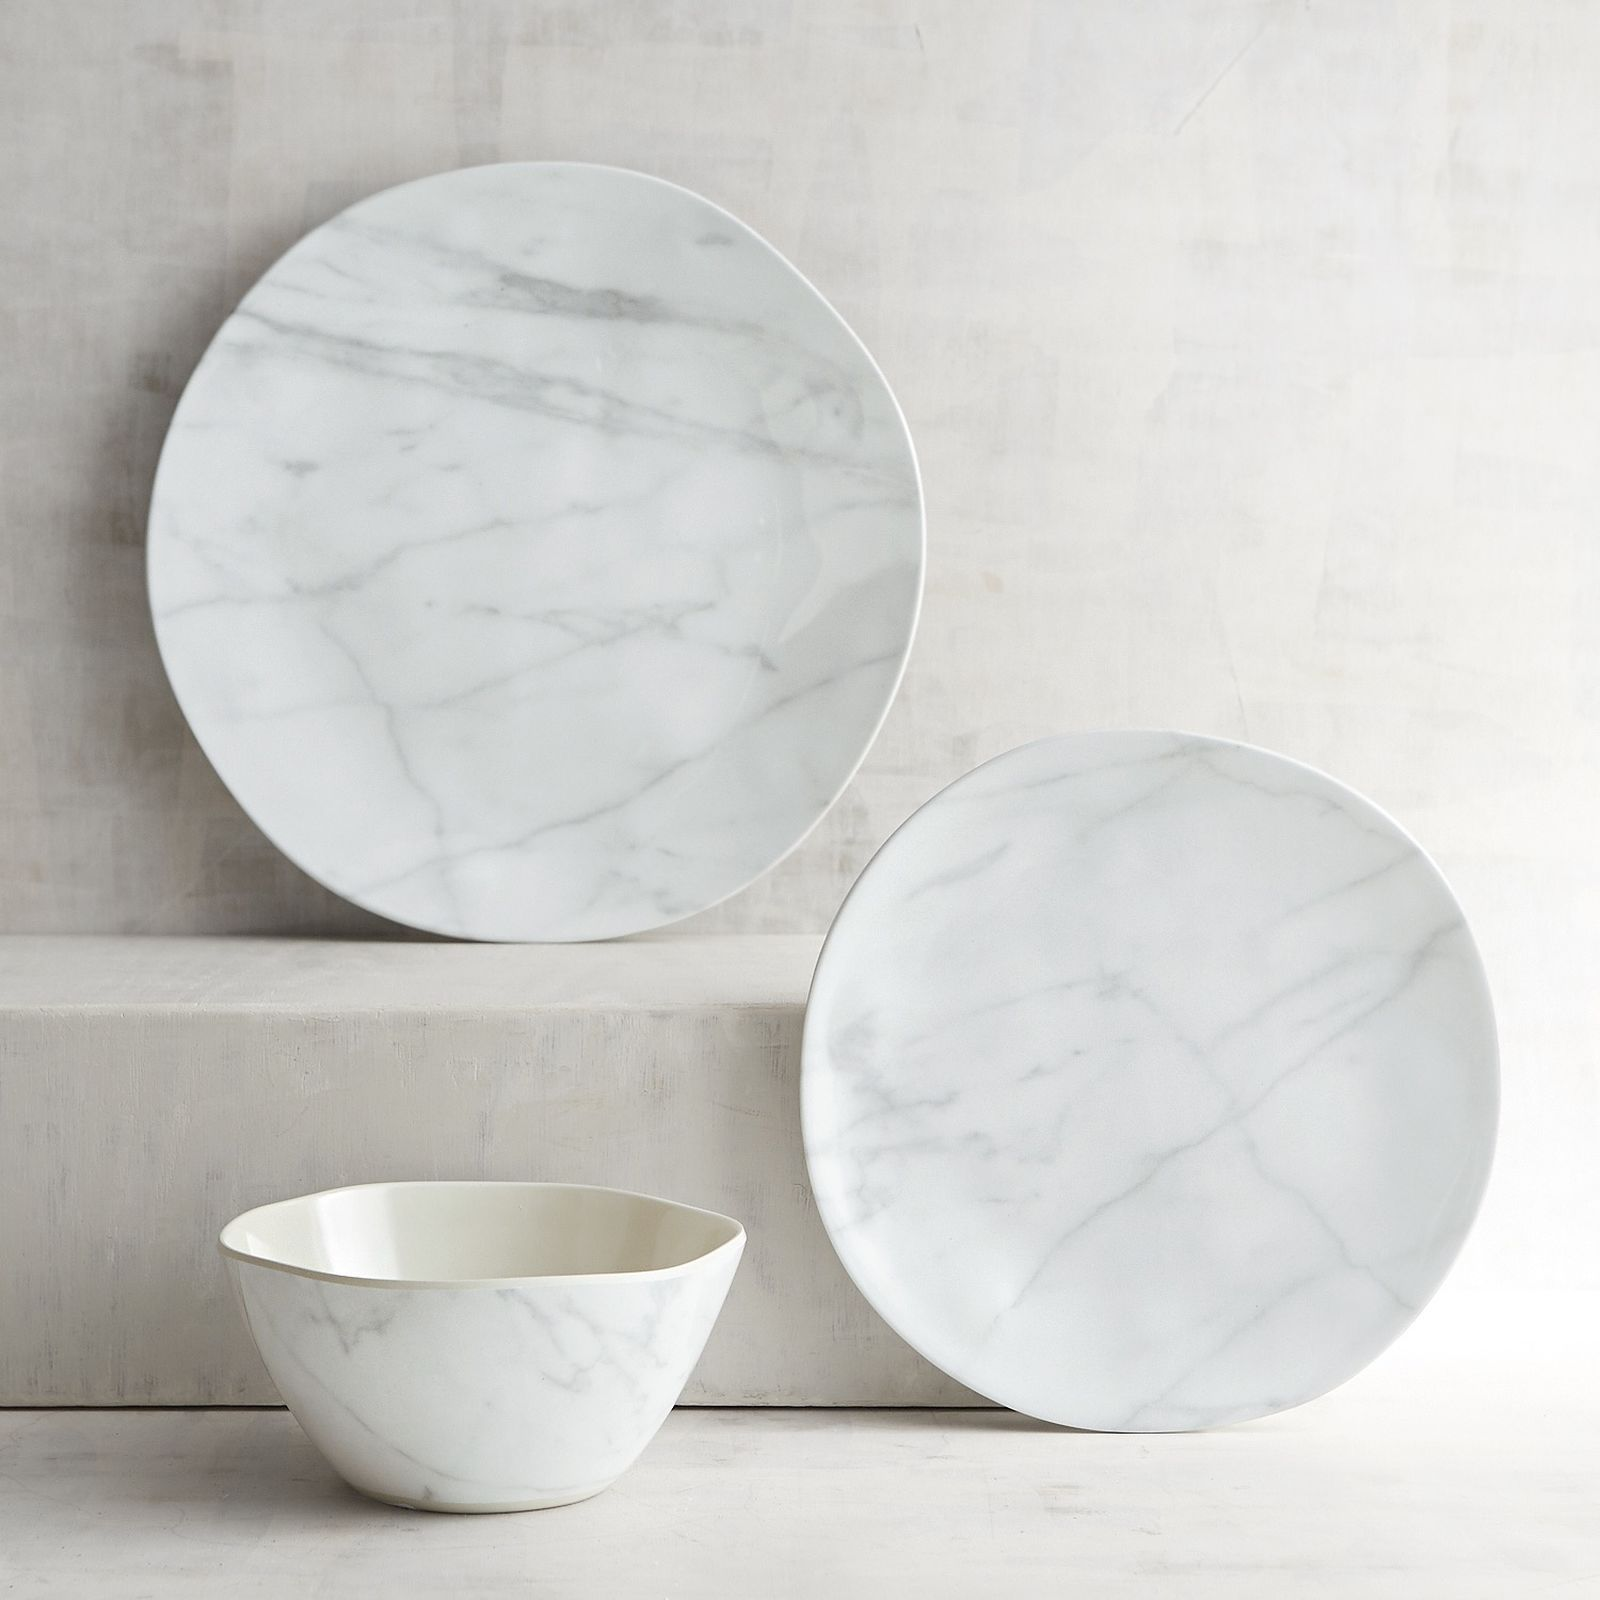 Marble Melamine Dinnerware With Images Melamine Dinnerware Melamine Dinnerware Sets